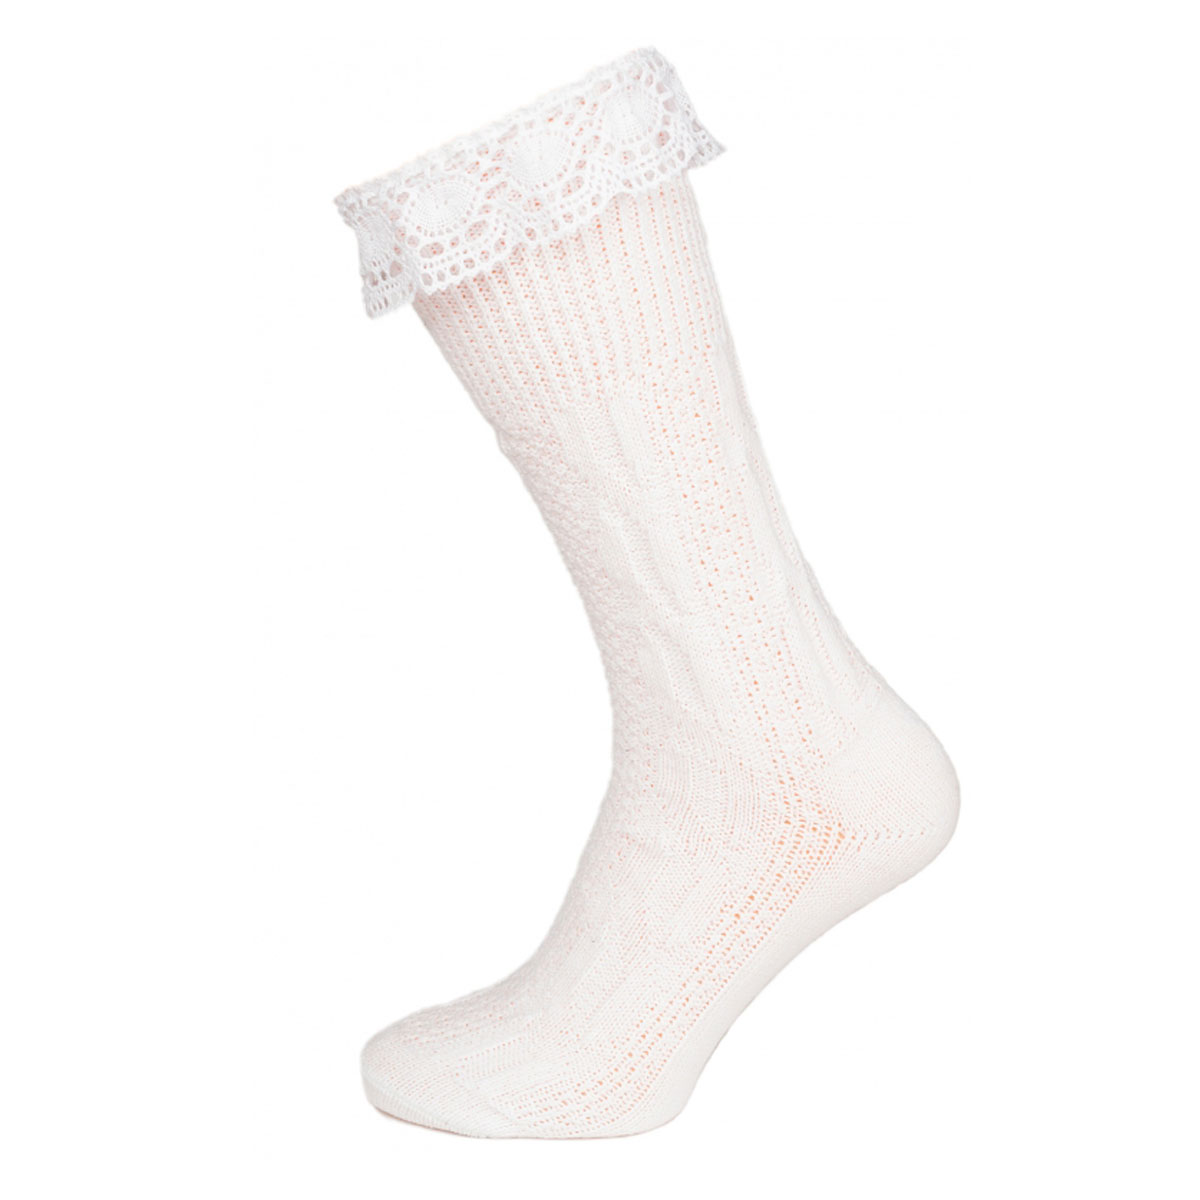 WHITE FEMALE SOCKS